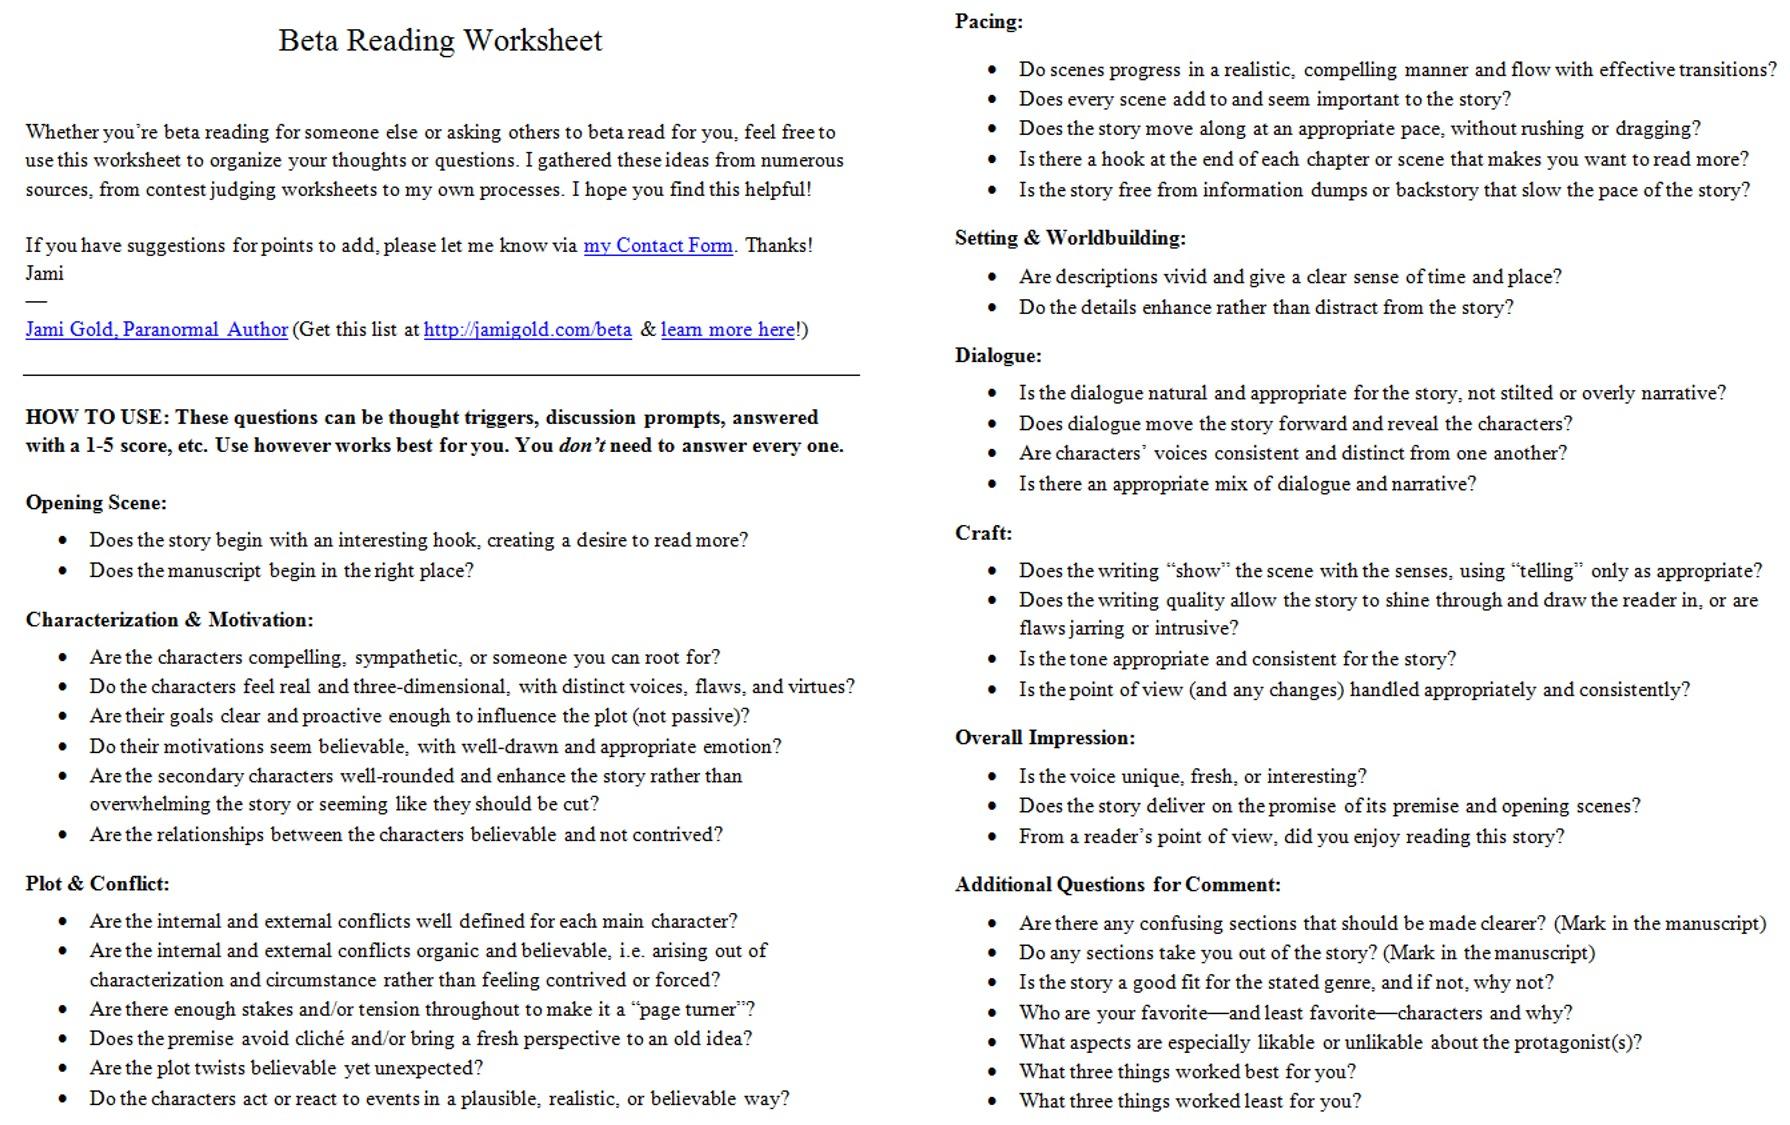 Aldiablosus  Prepossessing Worksheets For Writers  Jami Gold Paranormal Author With Interesting Screen Shot Of The Twopage Beta Reading Worksheet With Divine Blank Anatomy Worksheets Also Code Of Hammurabi Worksheet In Addition Middle Ages Worksheet And Suffix Ed Worksheets As Well As Grief Worksheet Additionally The Letter B Worksheets From Jamigoldcom With Aldiablosus  Interesting Worksheets For Writers  Jami Gold Paranormal Author With Divine Screen Shot Of The Twopage Beta Reading Worksheet And Prepossessing Blank Anatomy Worksheets Also Code Of Hammurabi Worksheet In Addition Middle Ages Worksheet From Jamigoldcom